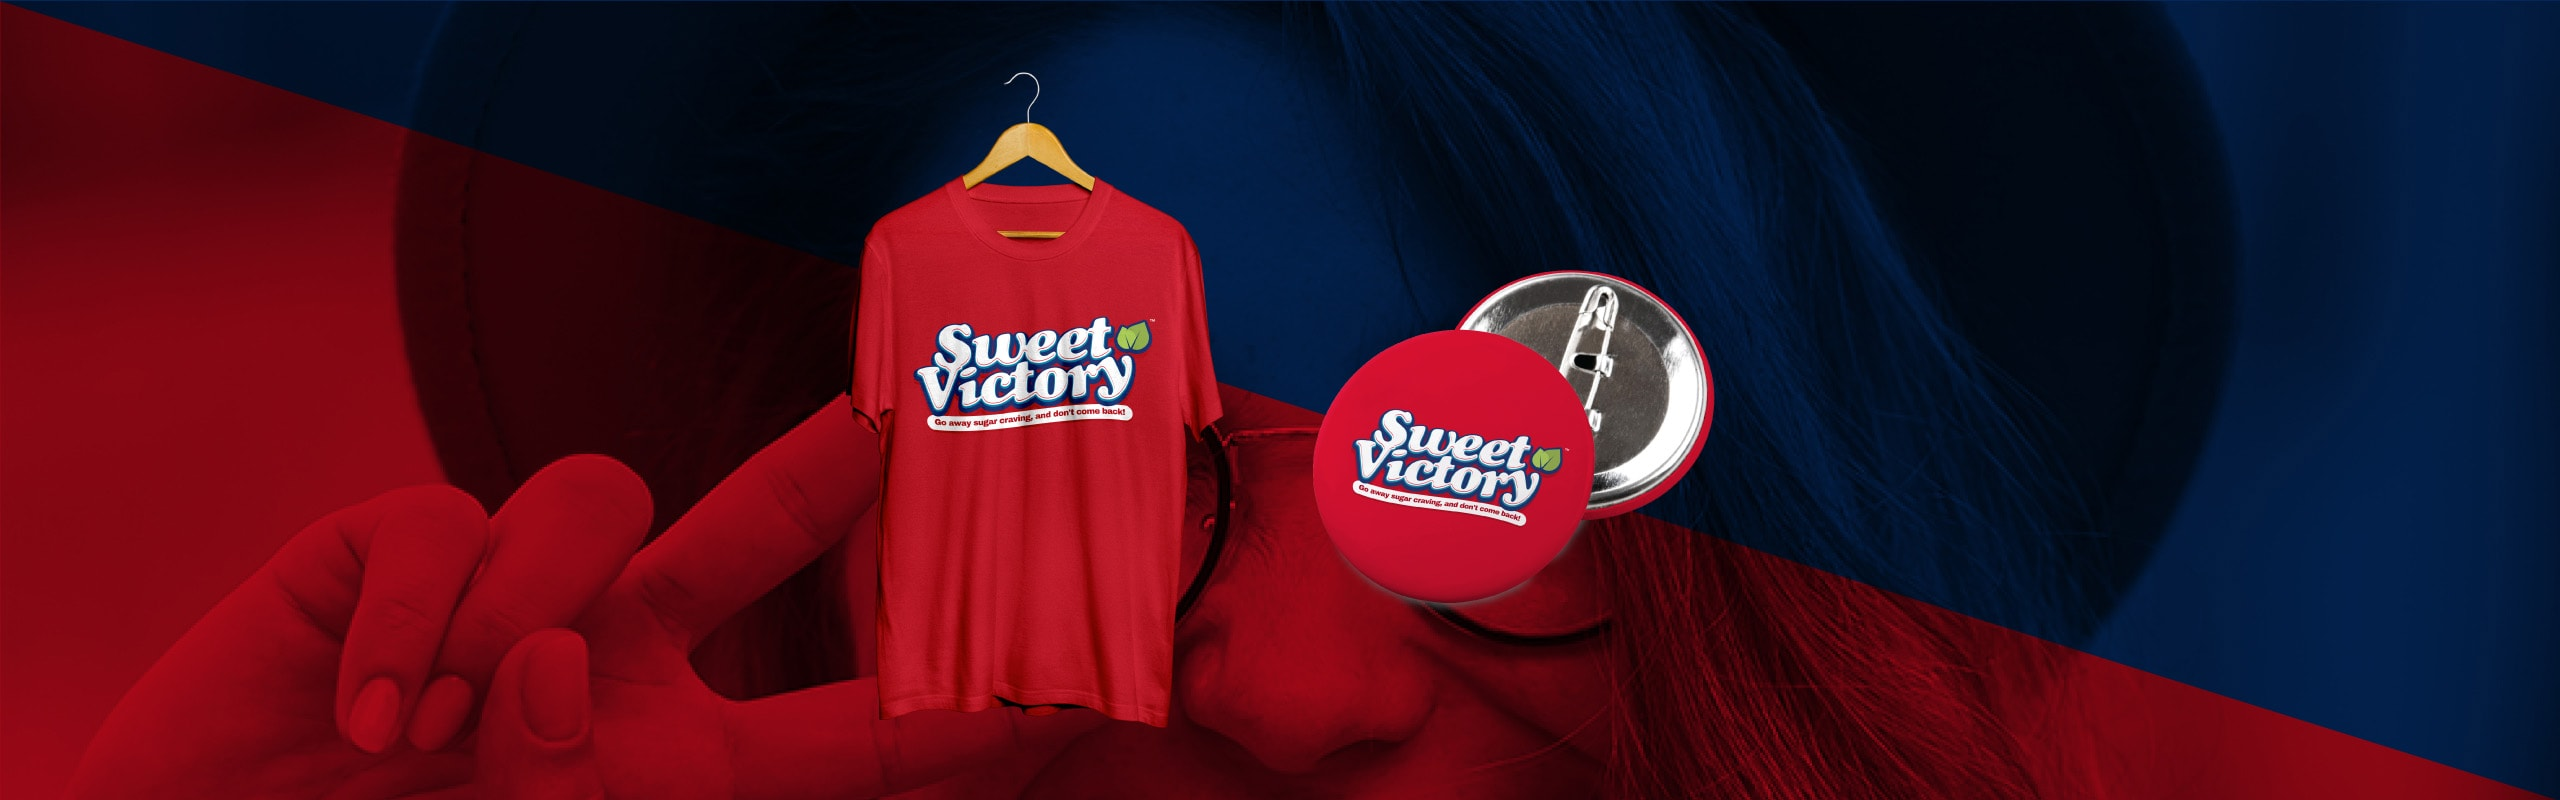 Sweet Victory - 19_a - Natie Branding Agency